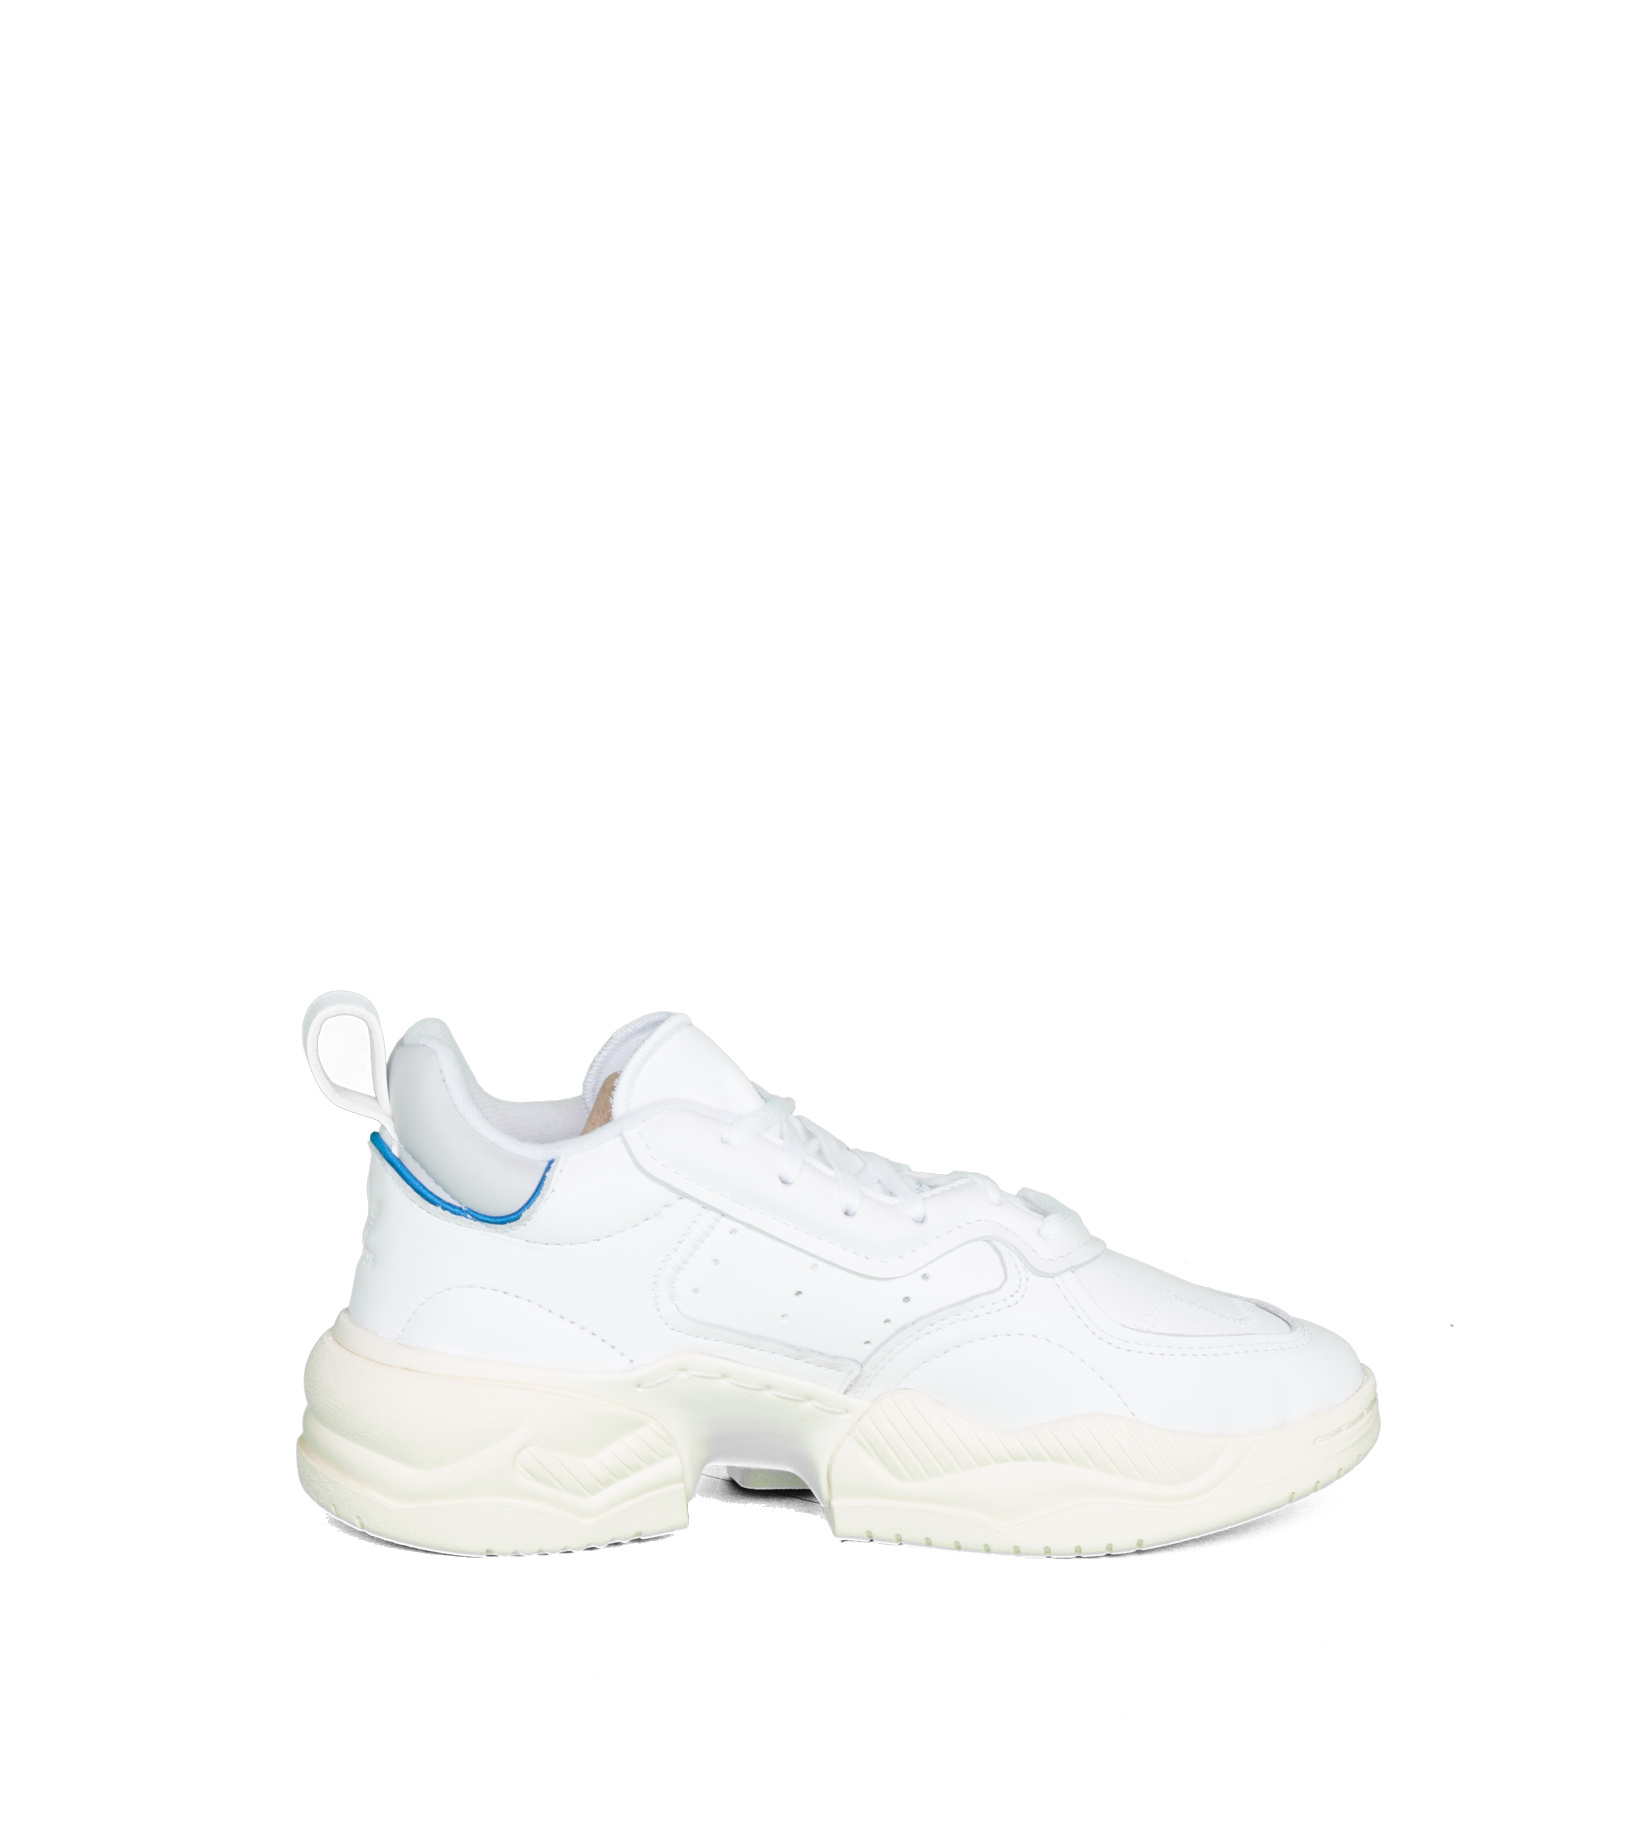 "Supercourt RX ""White/Blue""-4"